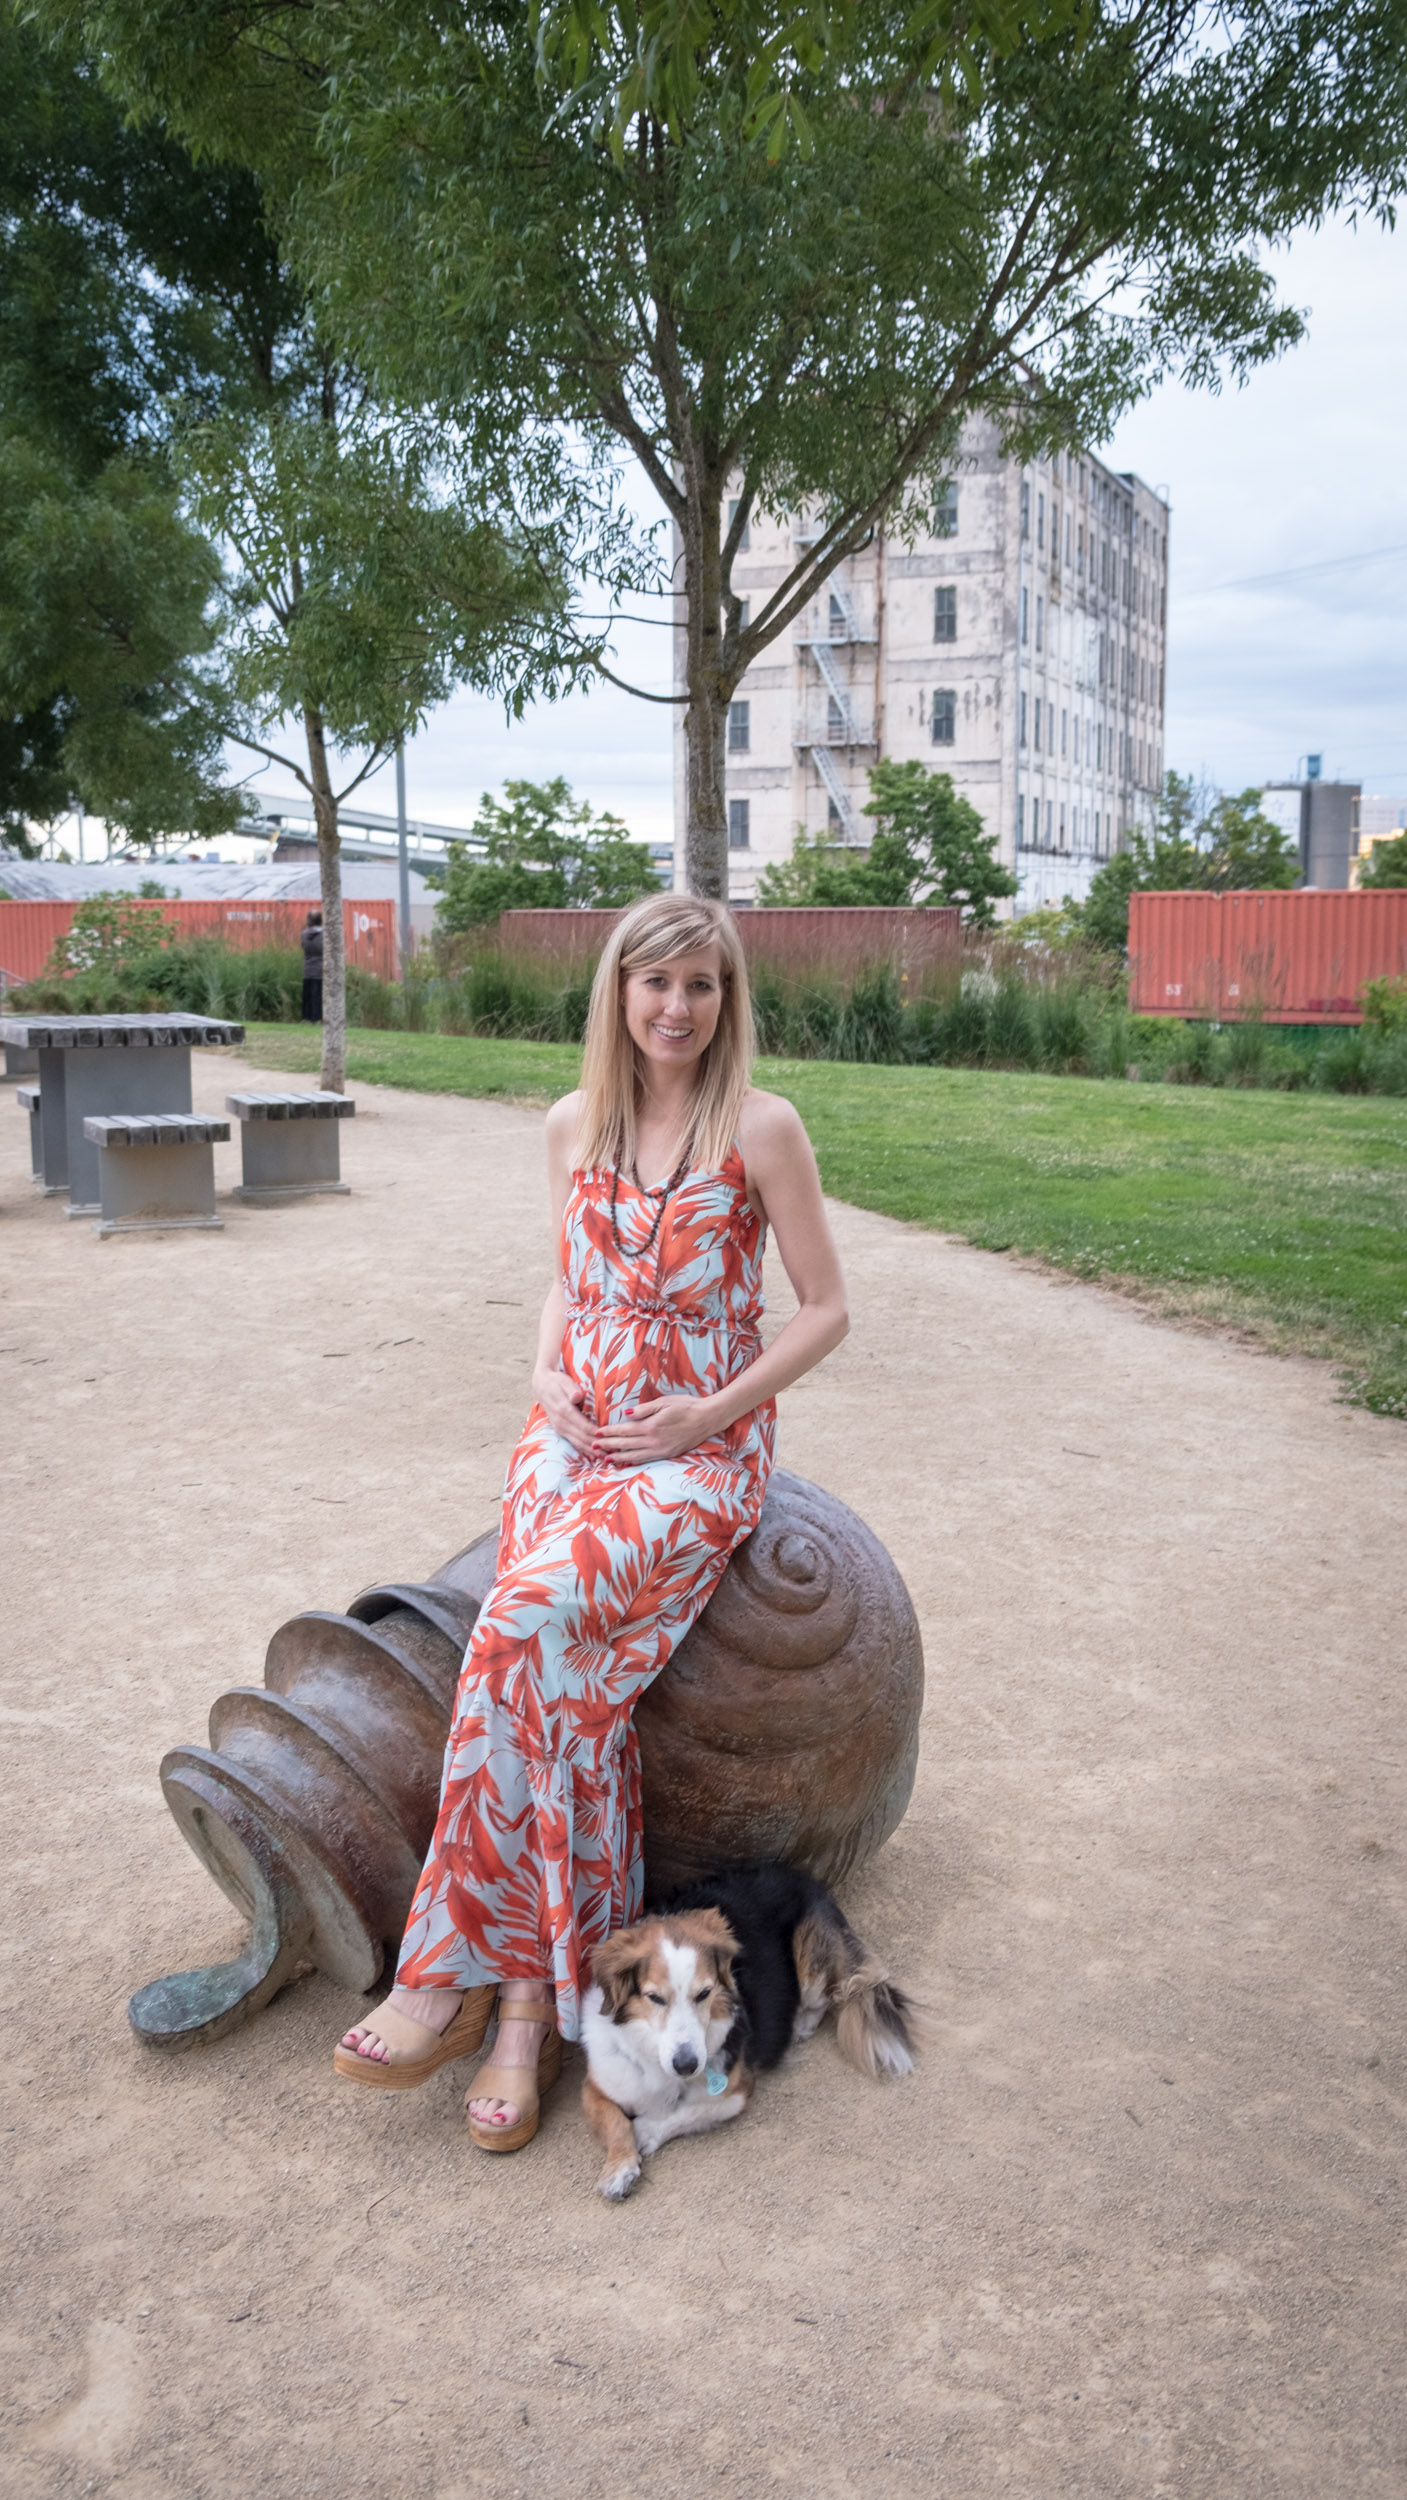 My equally-pregnant friend Megan and I had fun doing midway pregnancy shots at The Fields Park downtown